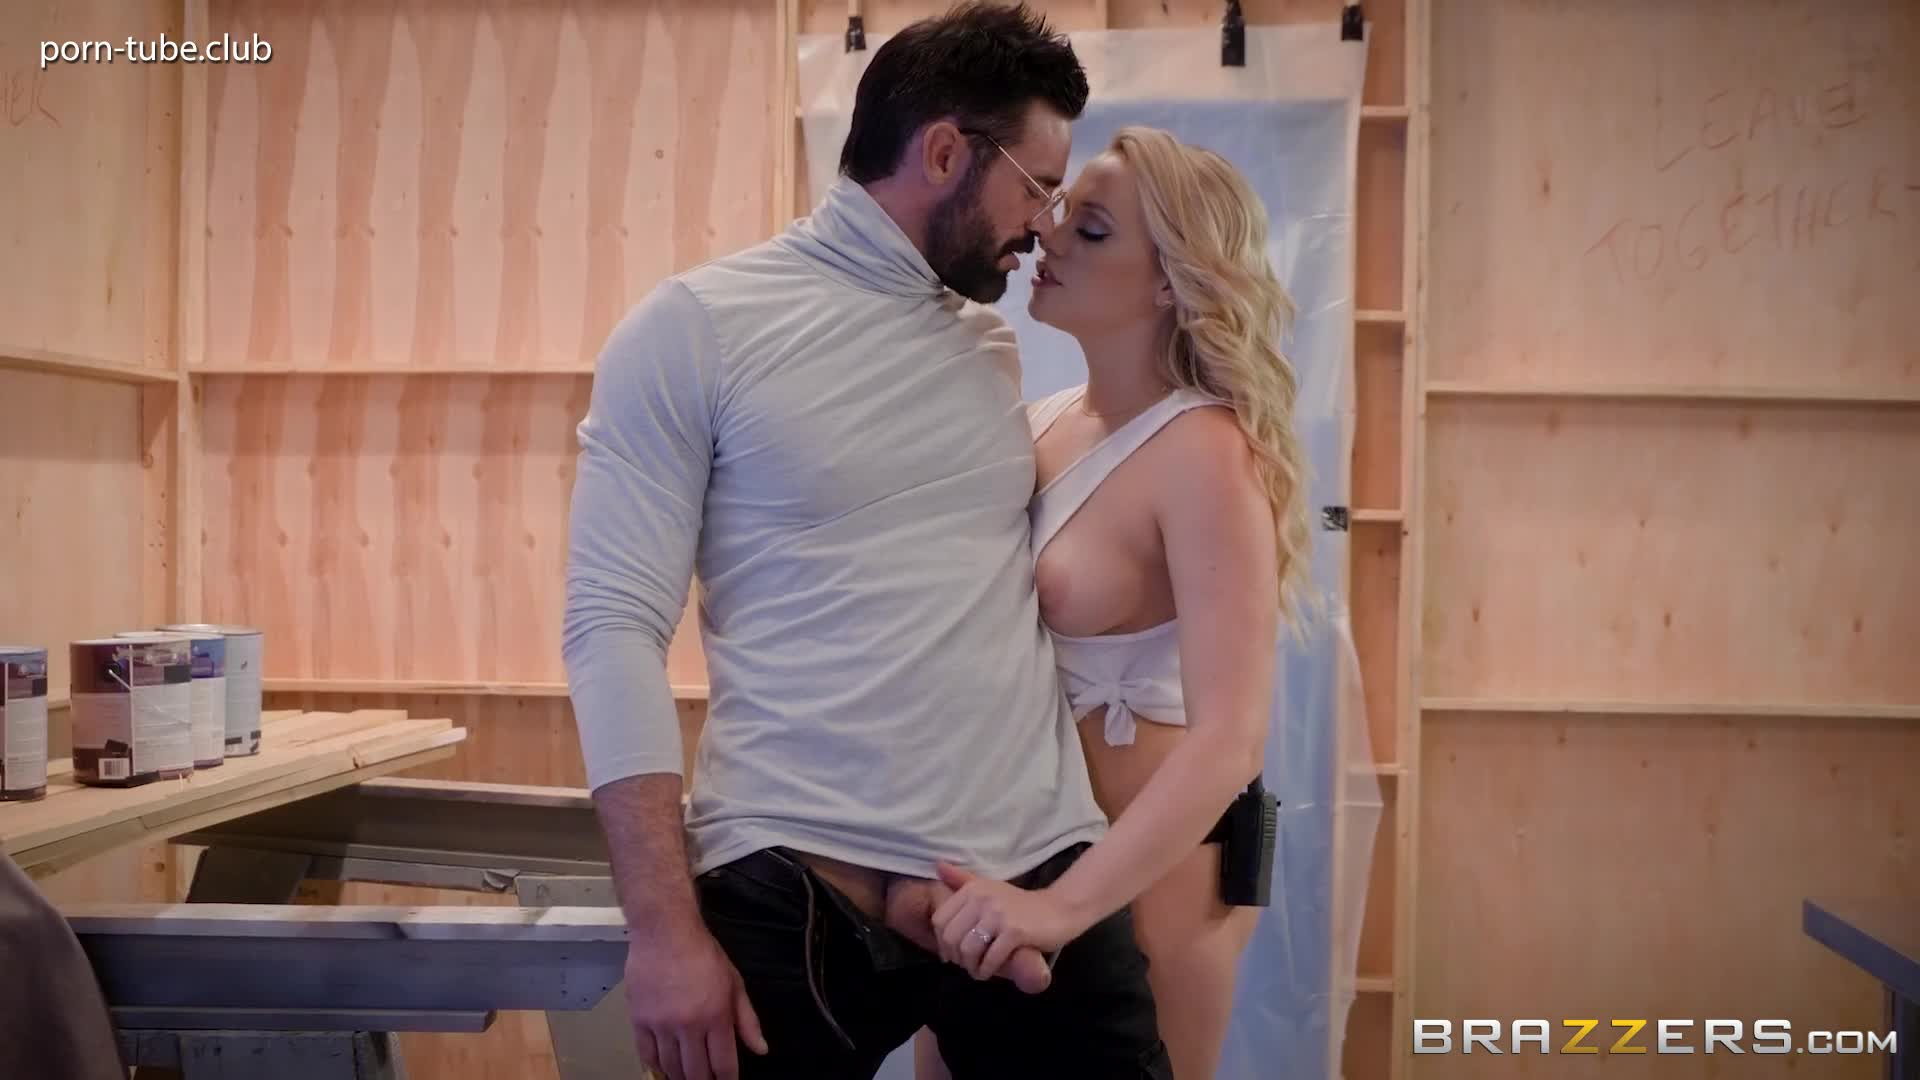 ZZSeries 17.12.21 Mia Malkova Die Hardcore Part 2 A